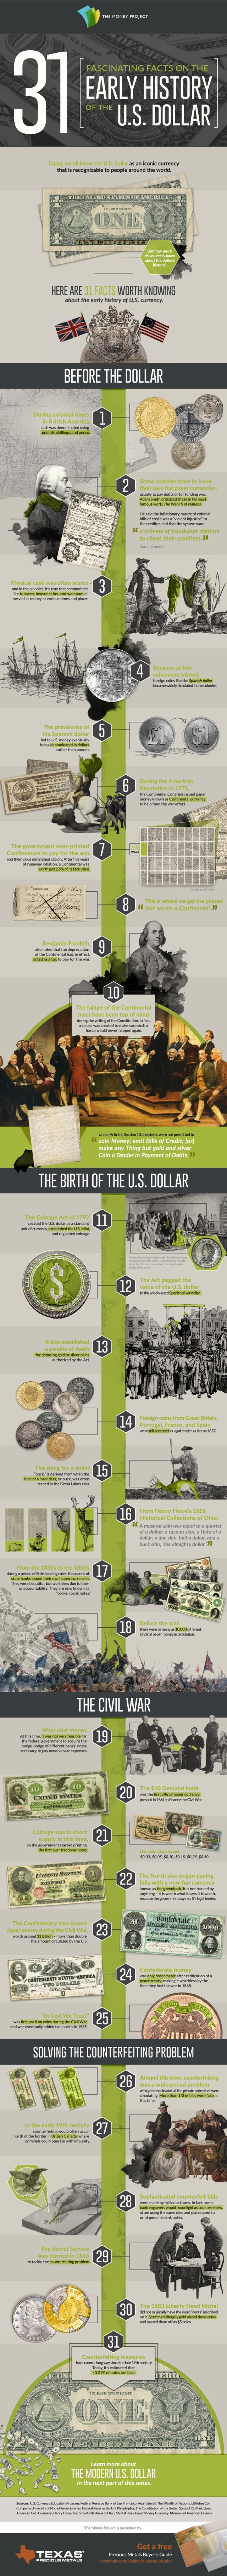 Early history of the US dollar